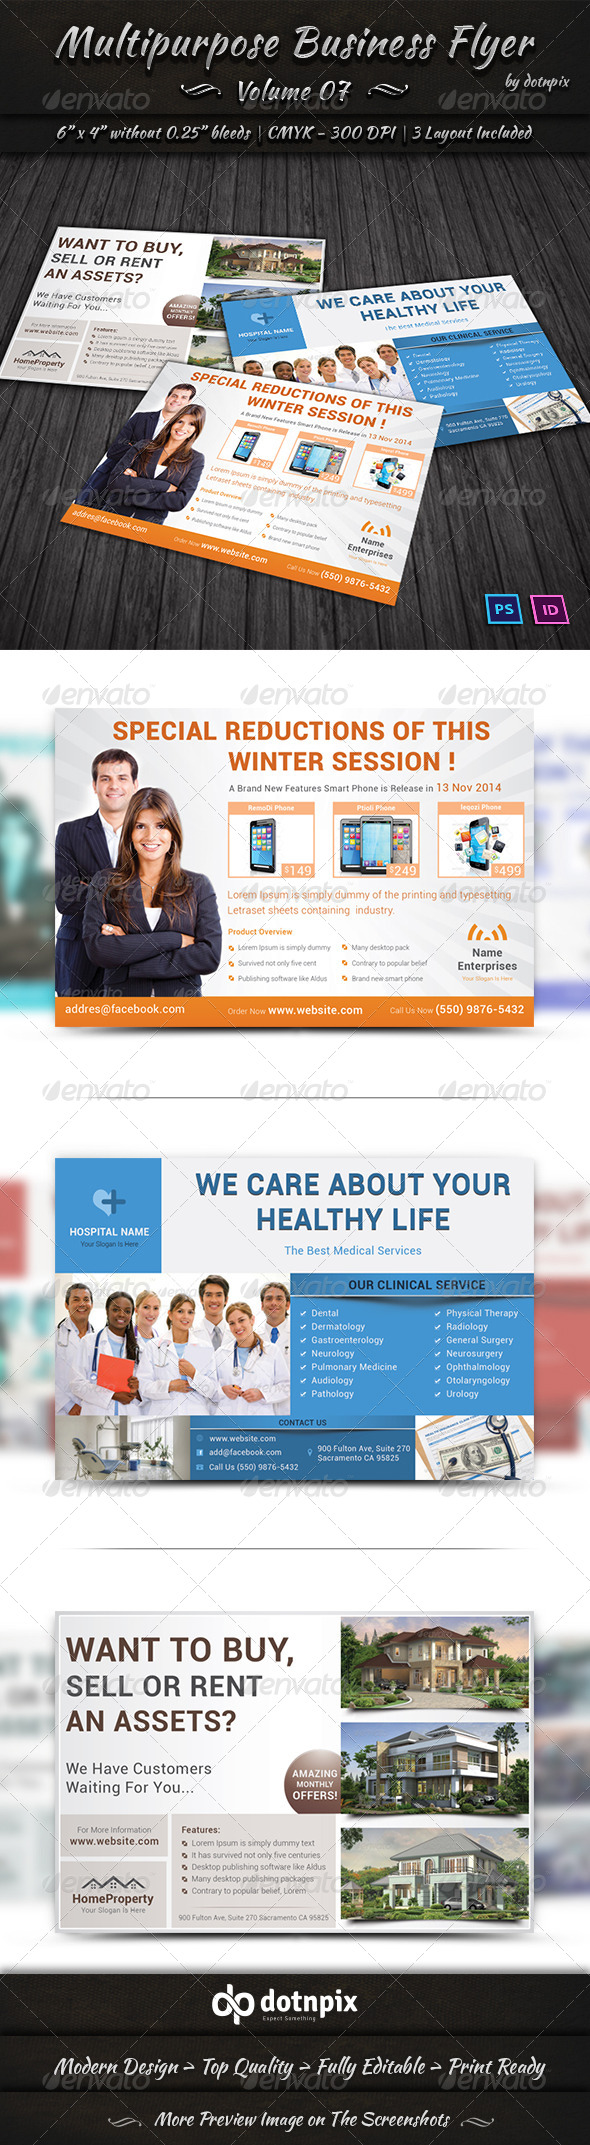 Multipurpose Business Flyer | Volume 7 - Corporate Flyers